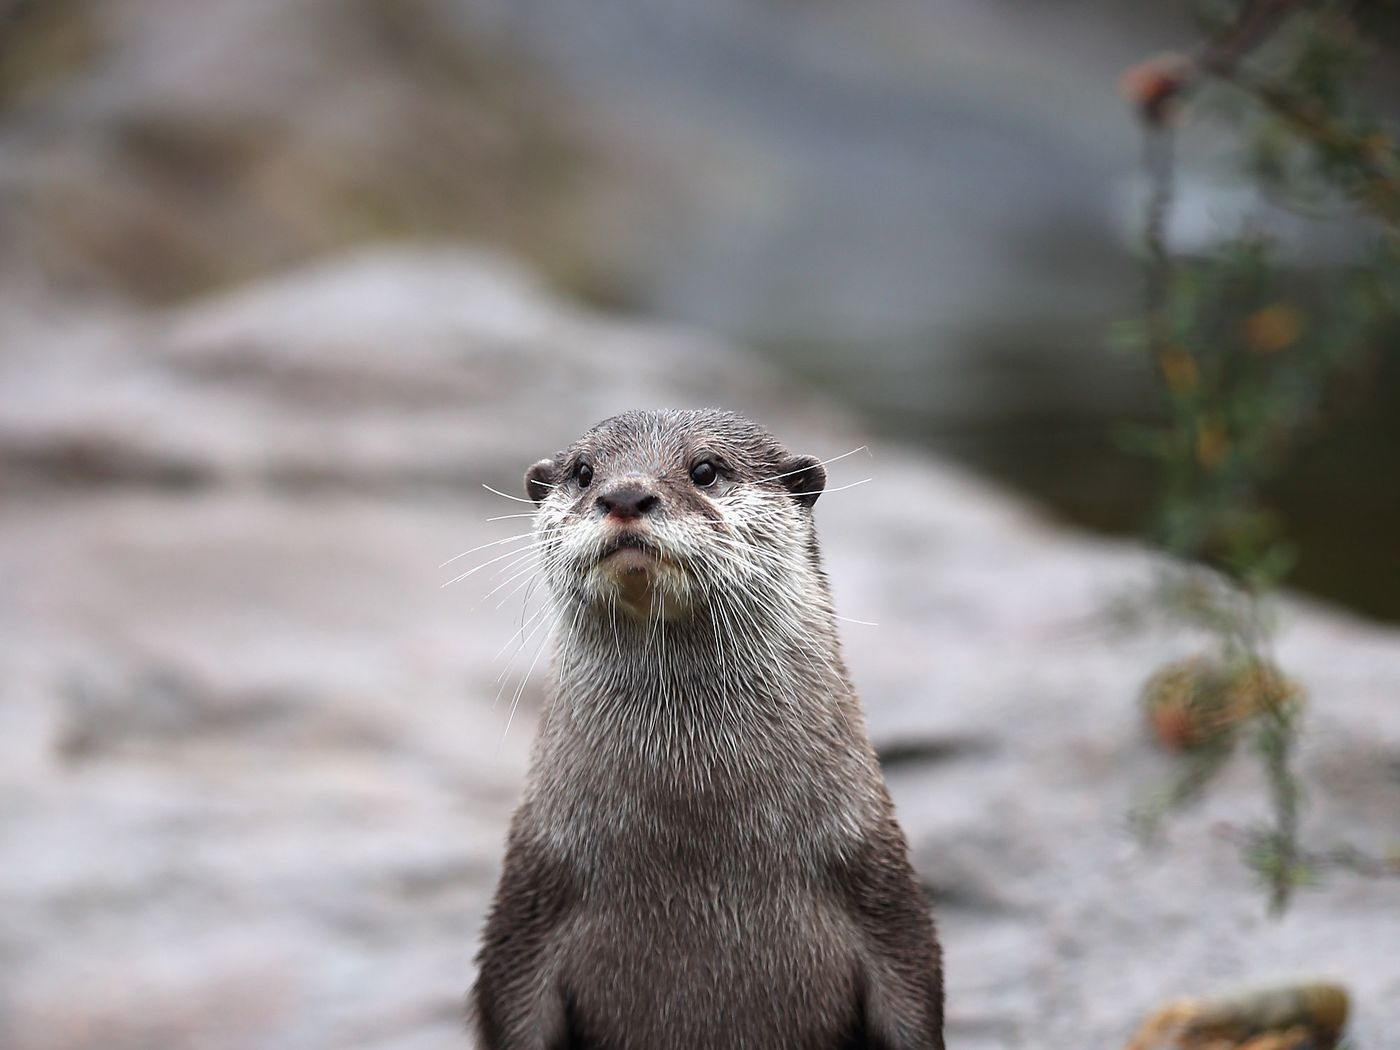 Five Ways That This Lettuce Eating Otter Could Save The